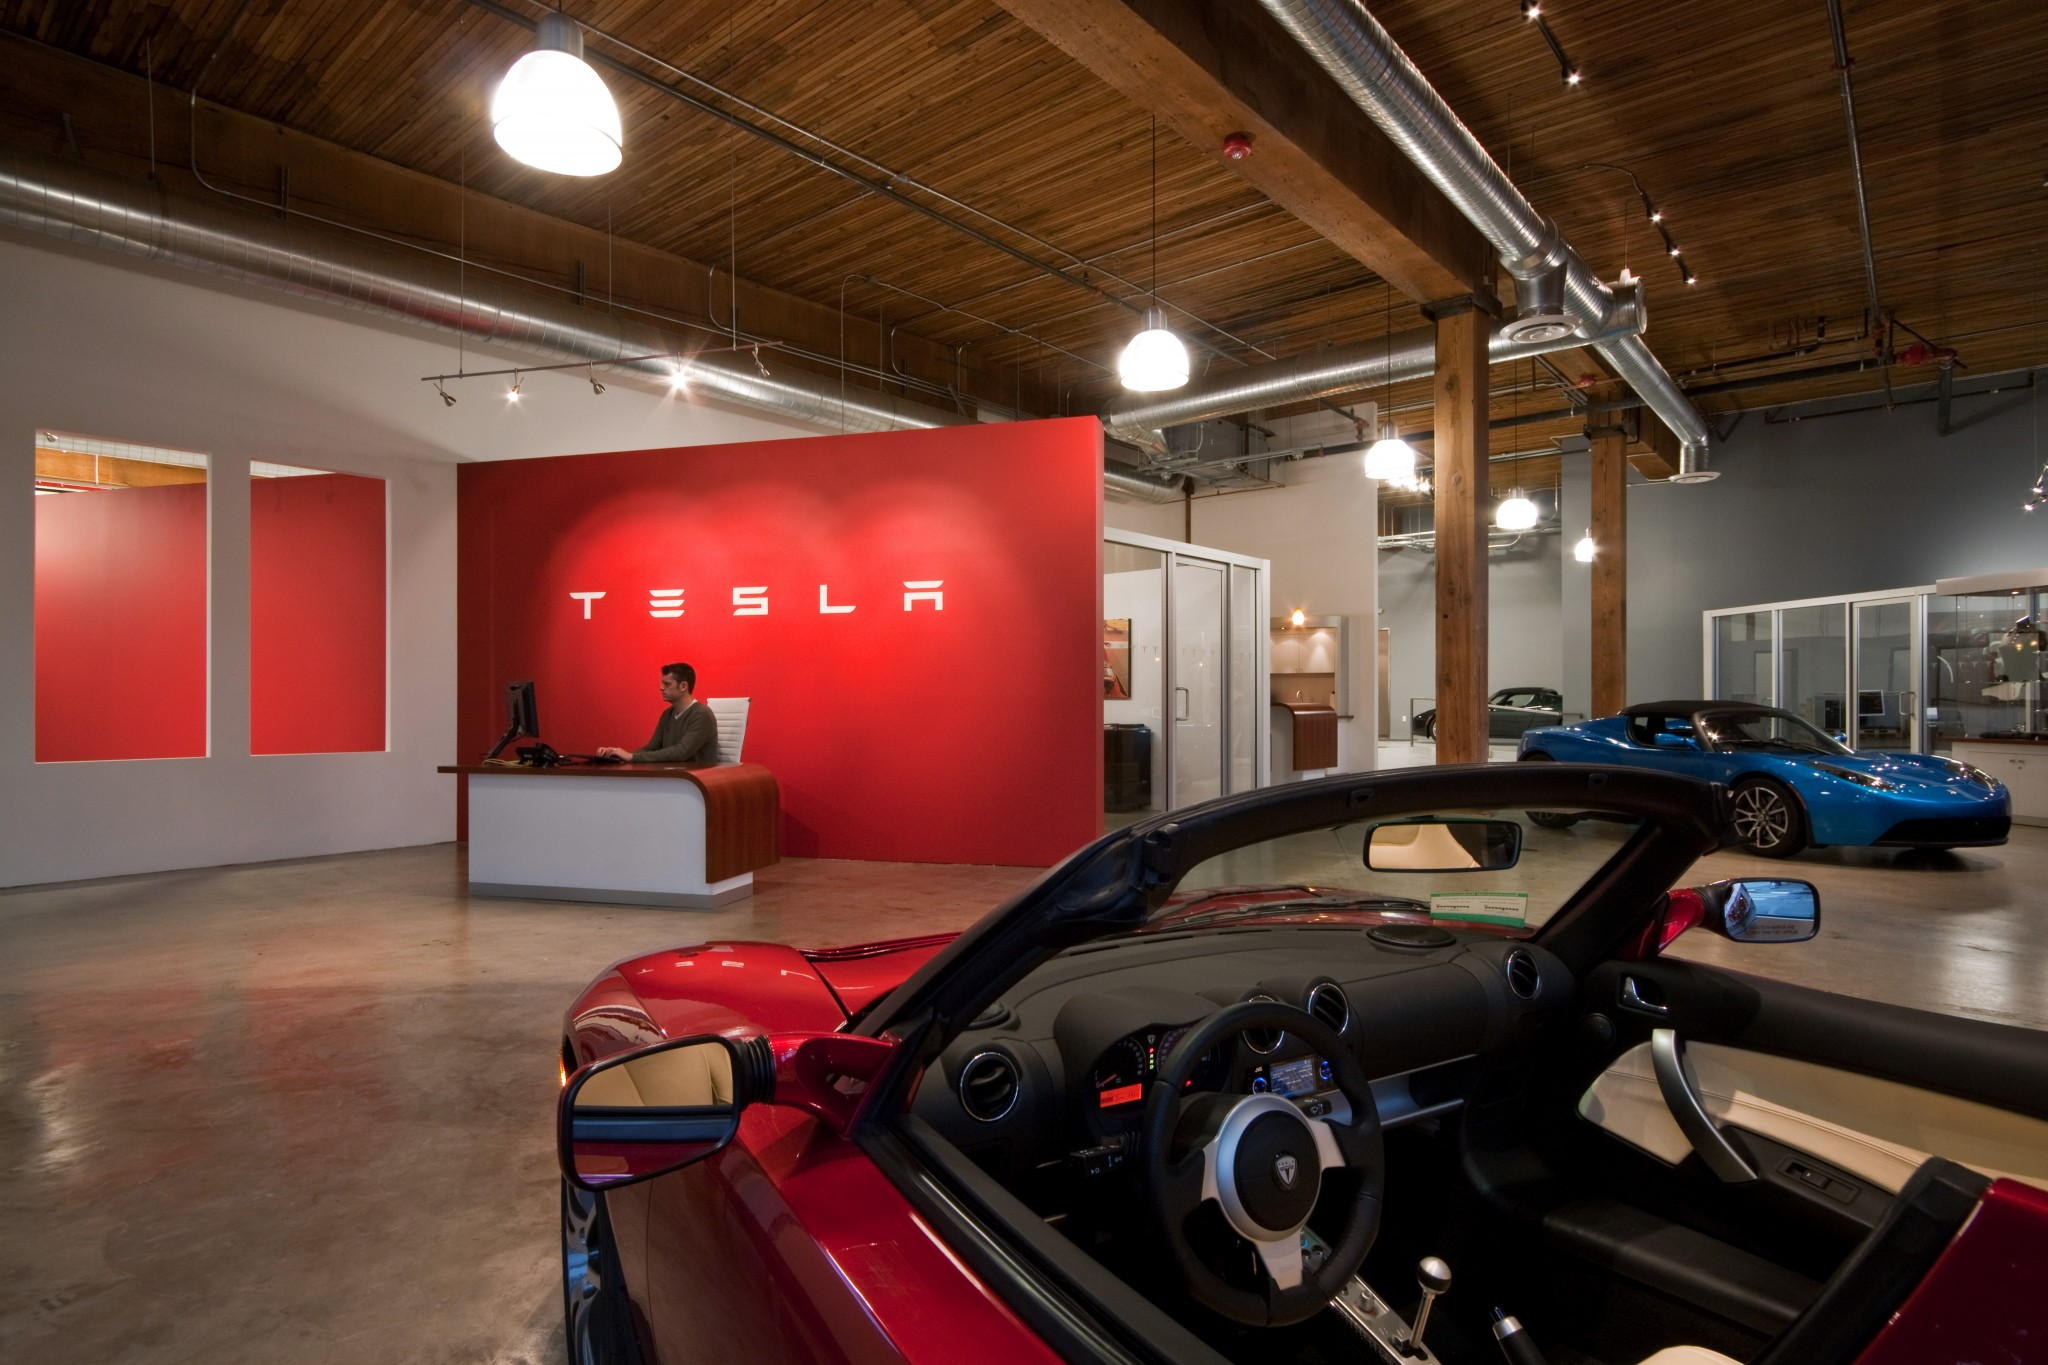 Tesla Showroom - Interior 3